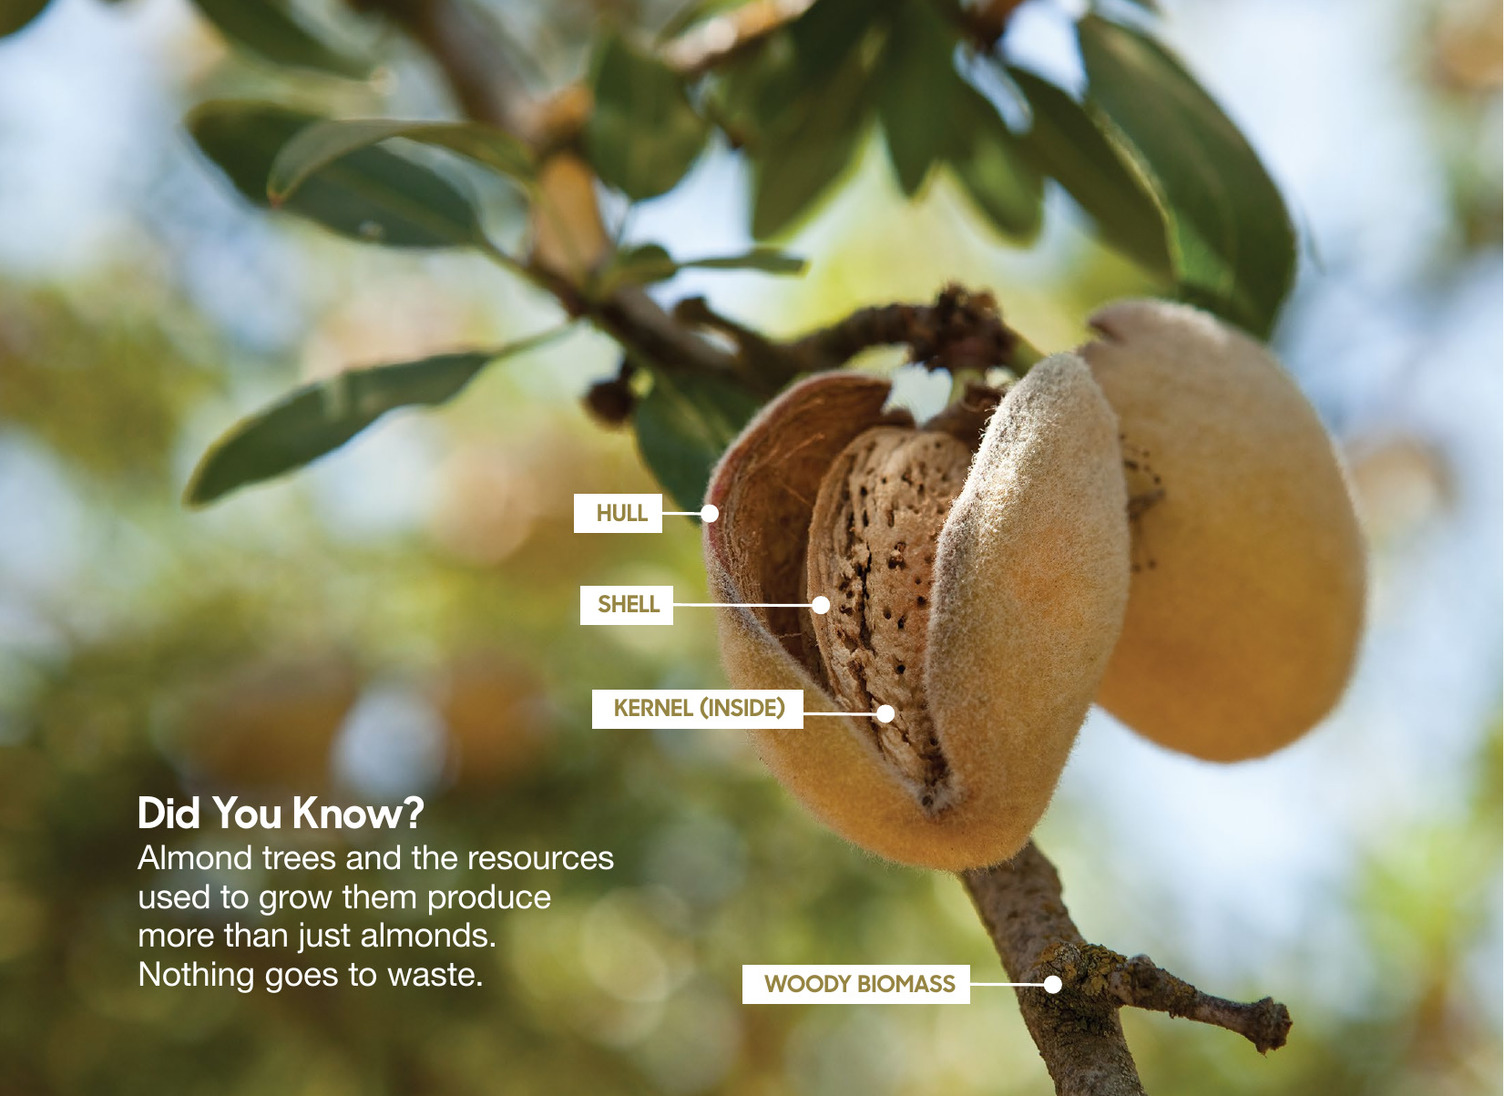 ALMOND BOARD CROP REPORTS